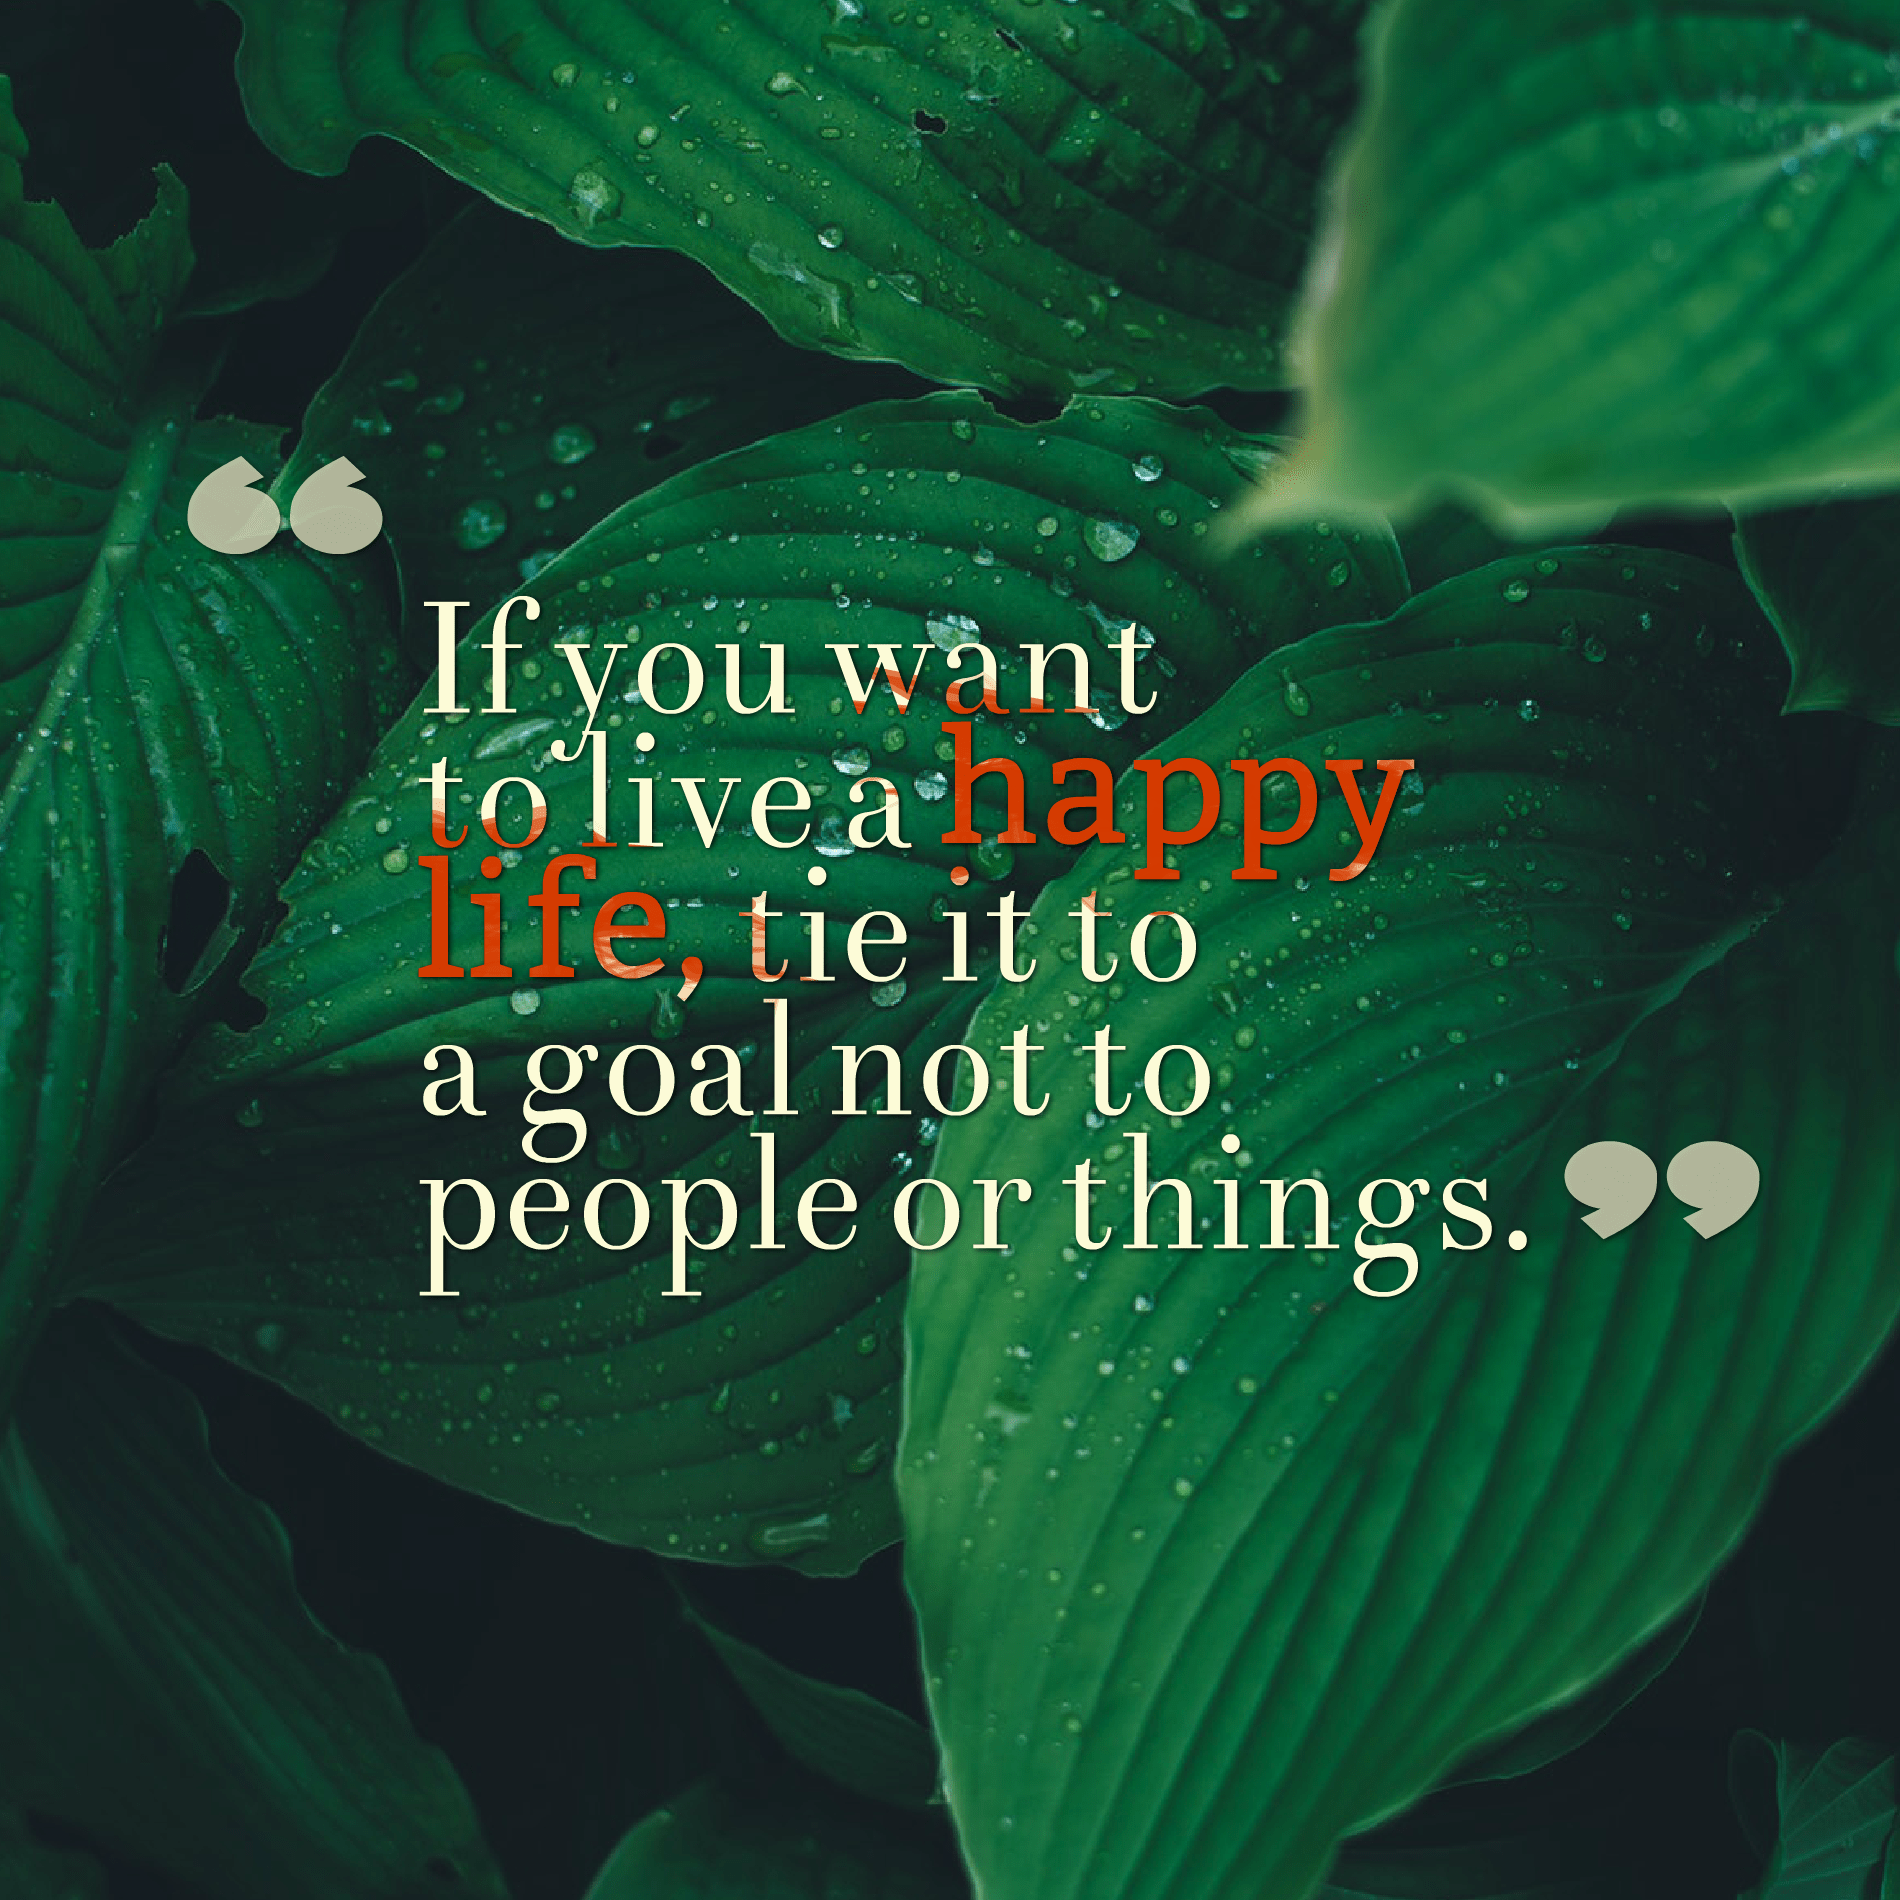 Quotes image of If you want to live a happy life, tie it to a goal not to people or things.